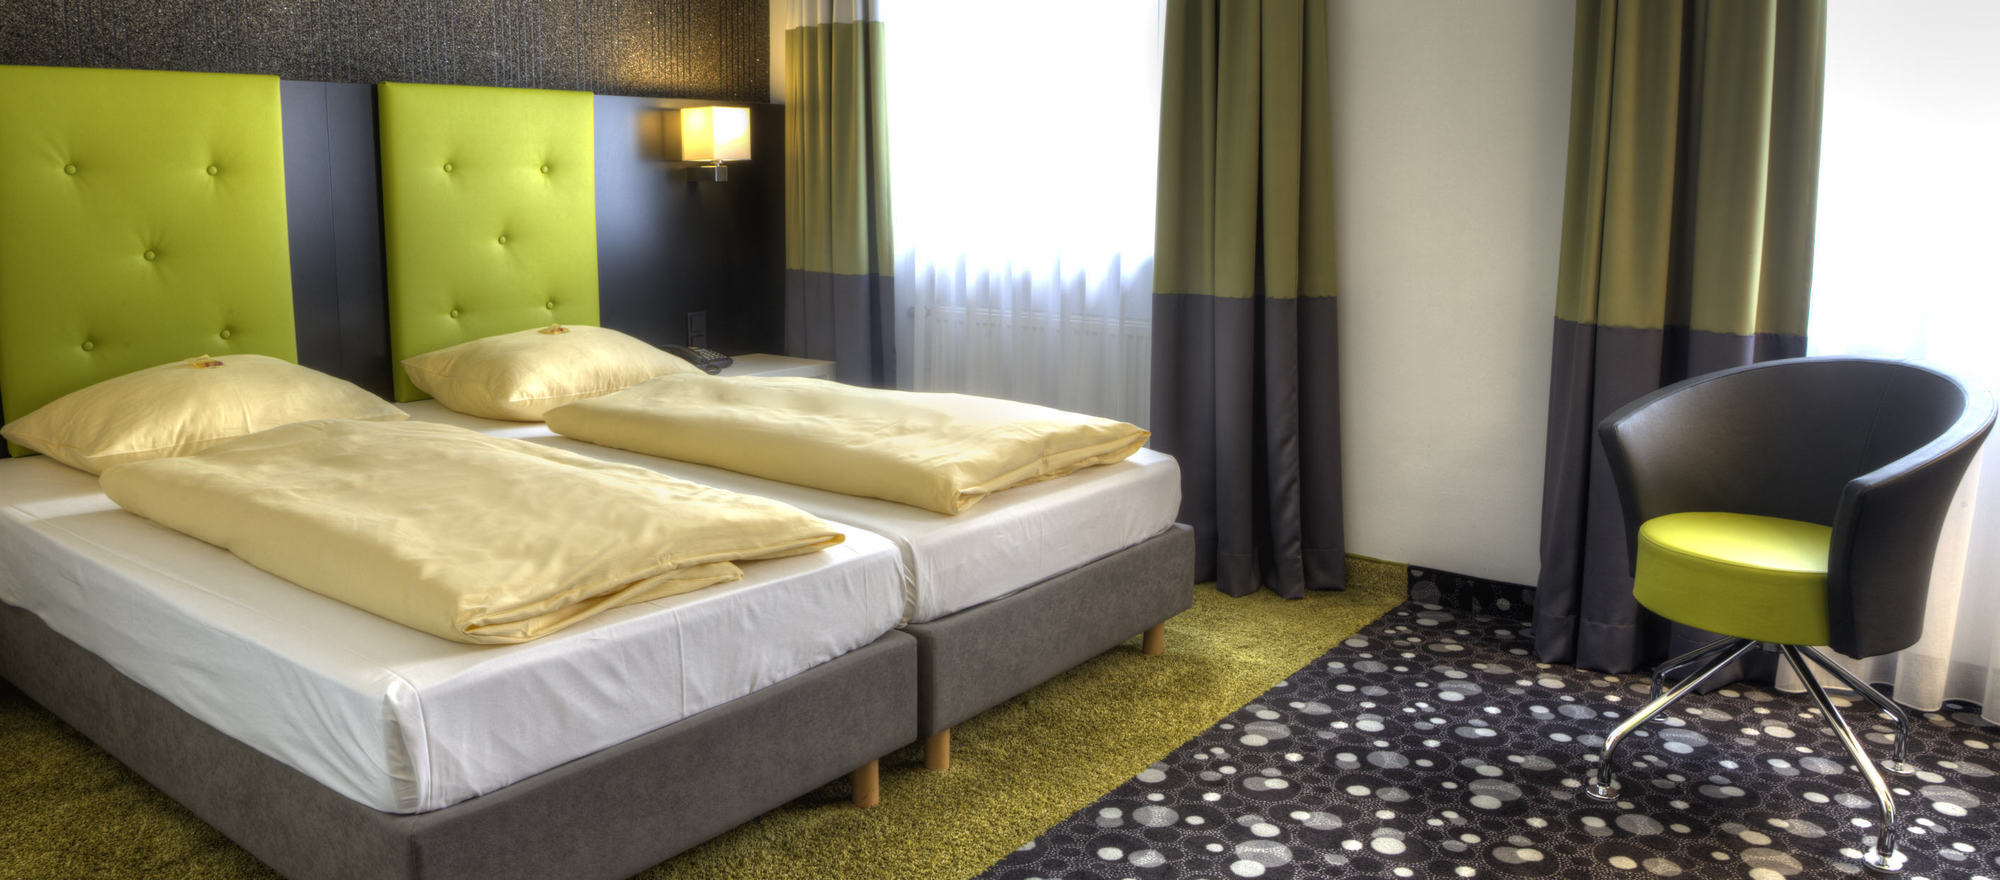 Standard double room beautiful color designed in the 3-star-superior hotel Ringhotel Reubel in Nuremberg-Zirndorf